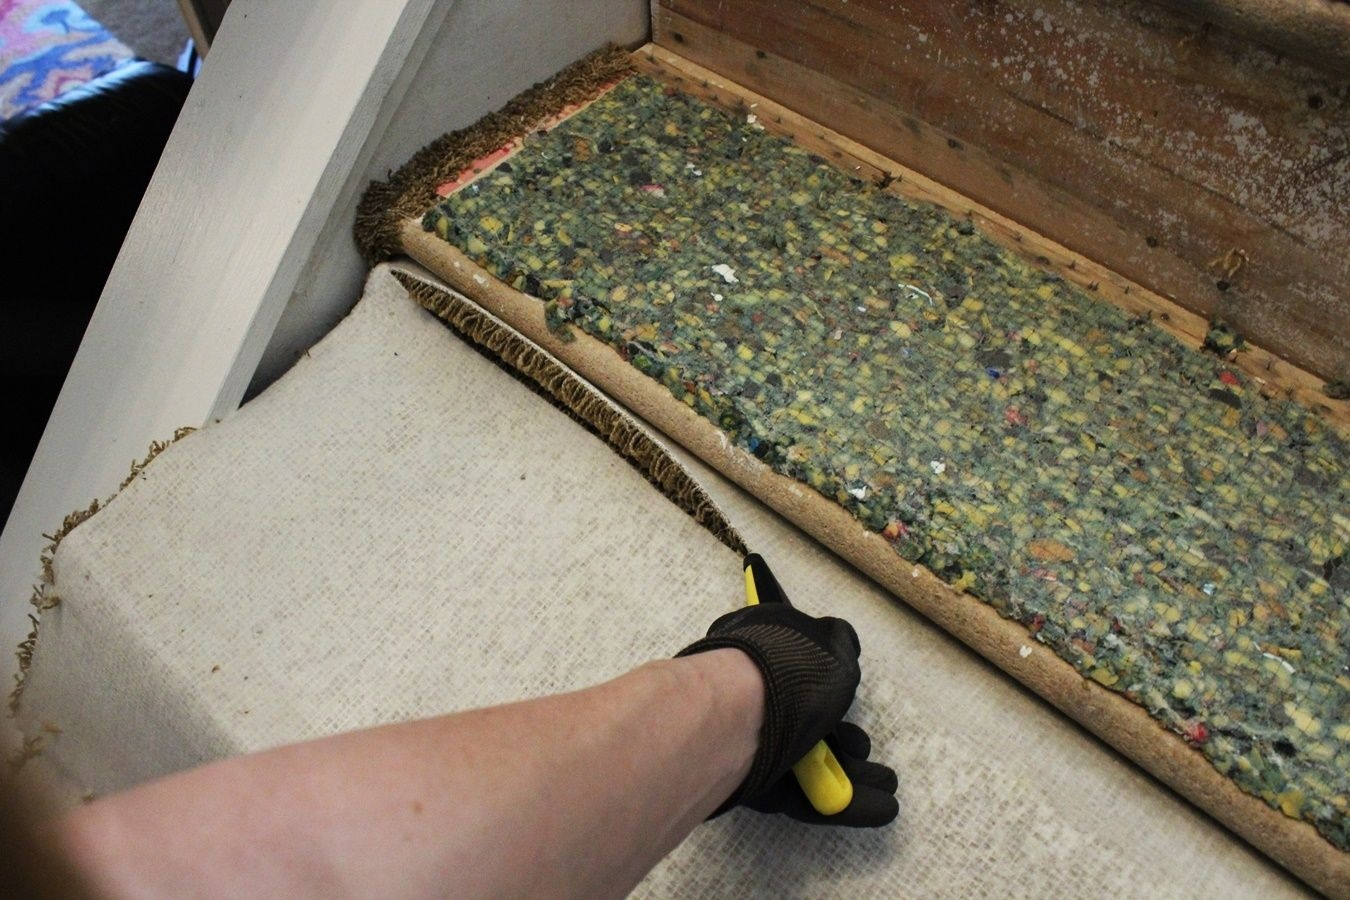 Update Your Staircase How To Remove And Install Carpet On The Stairs   Cutting Carpet For Stairs   Carpet Runner   Wood   Stair Nosing   Landing   Underlay